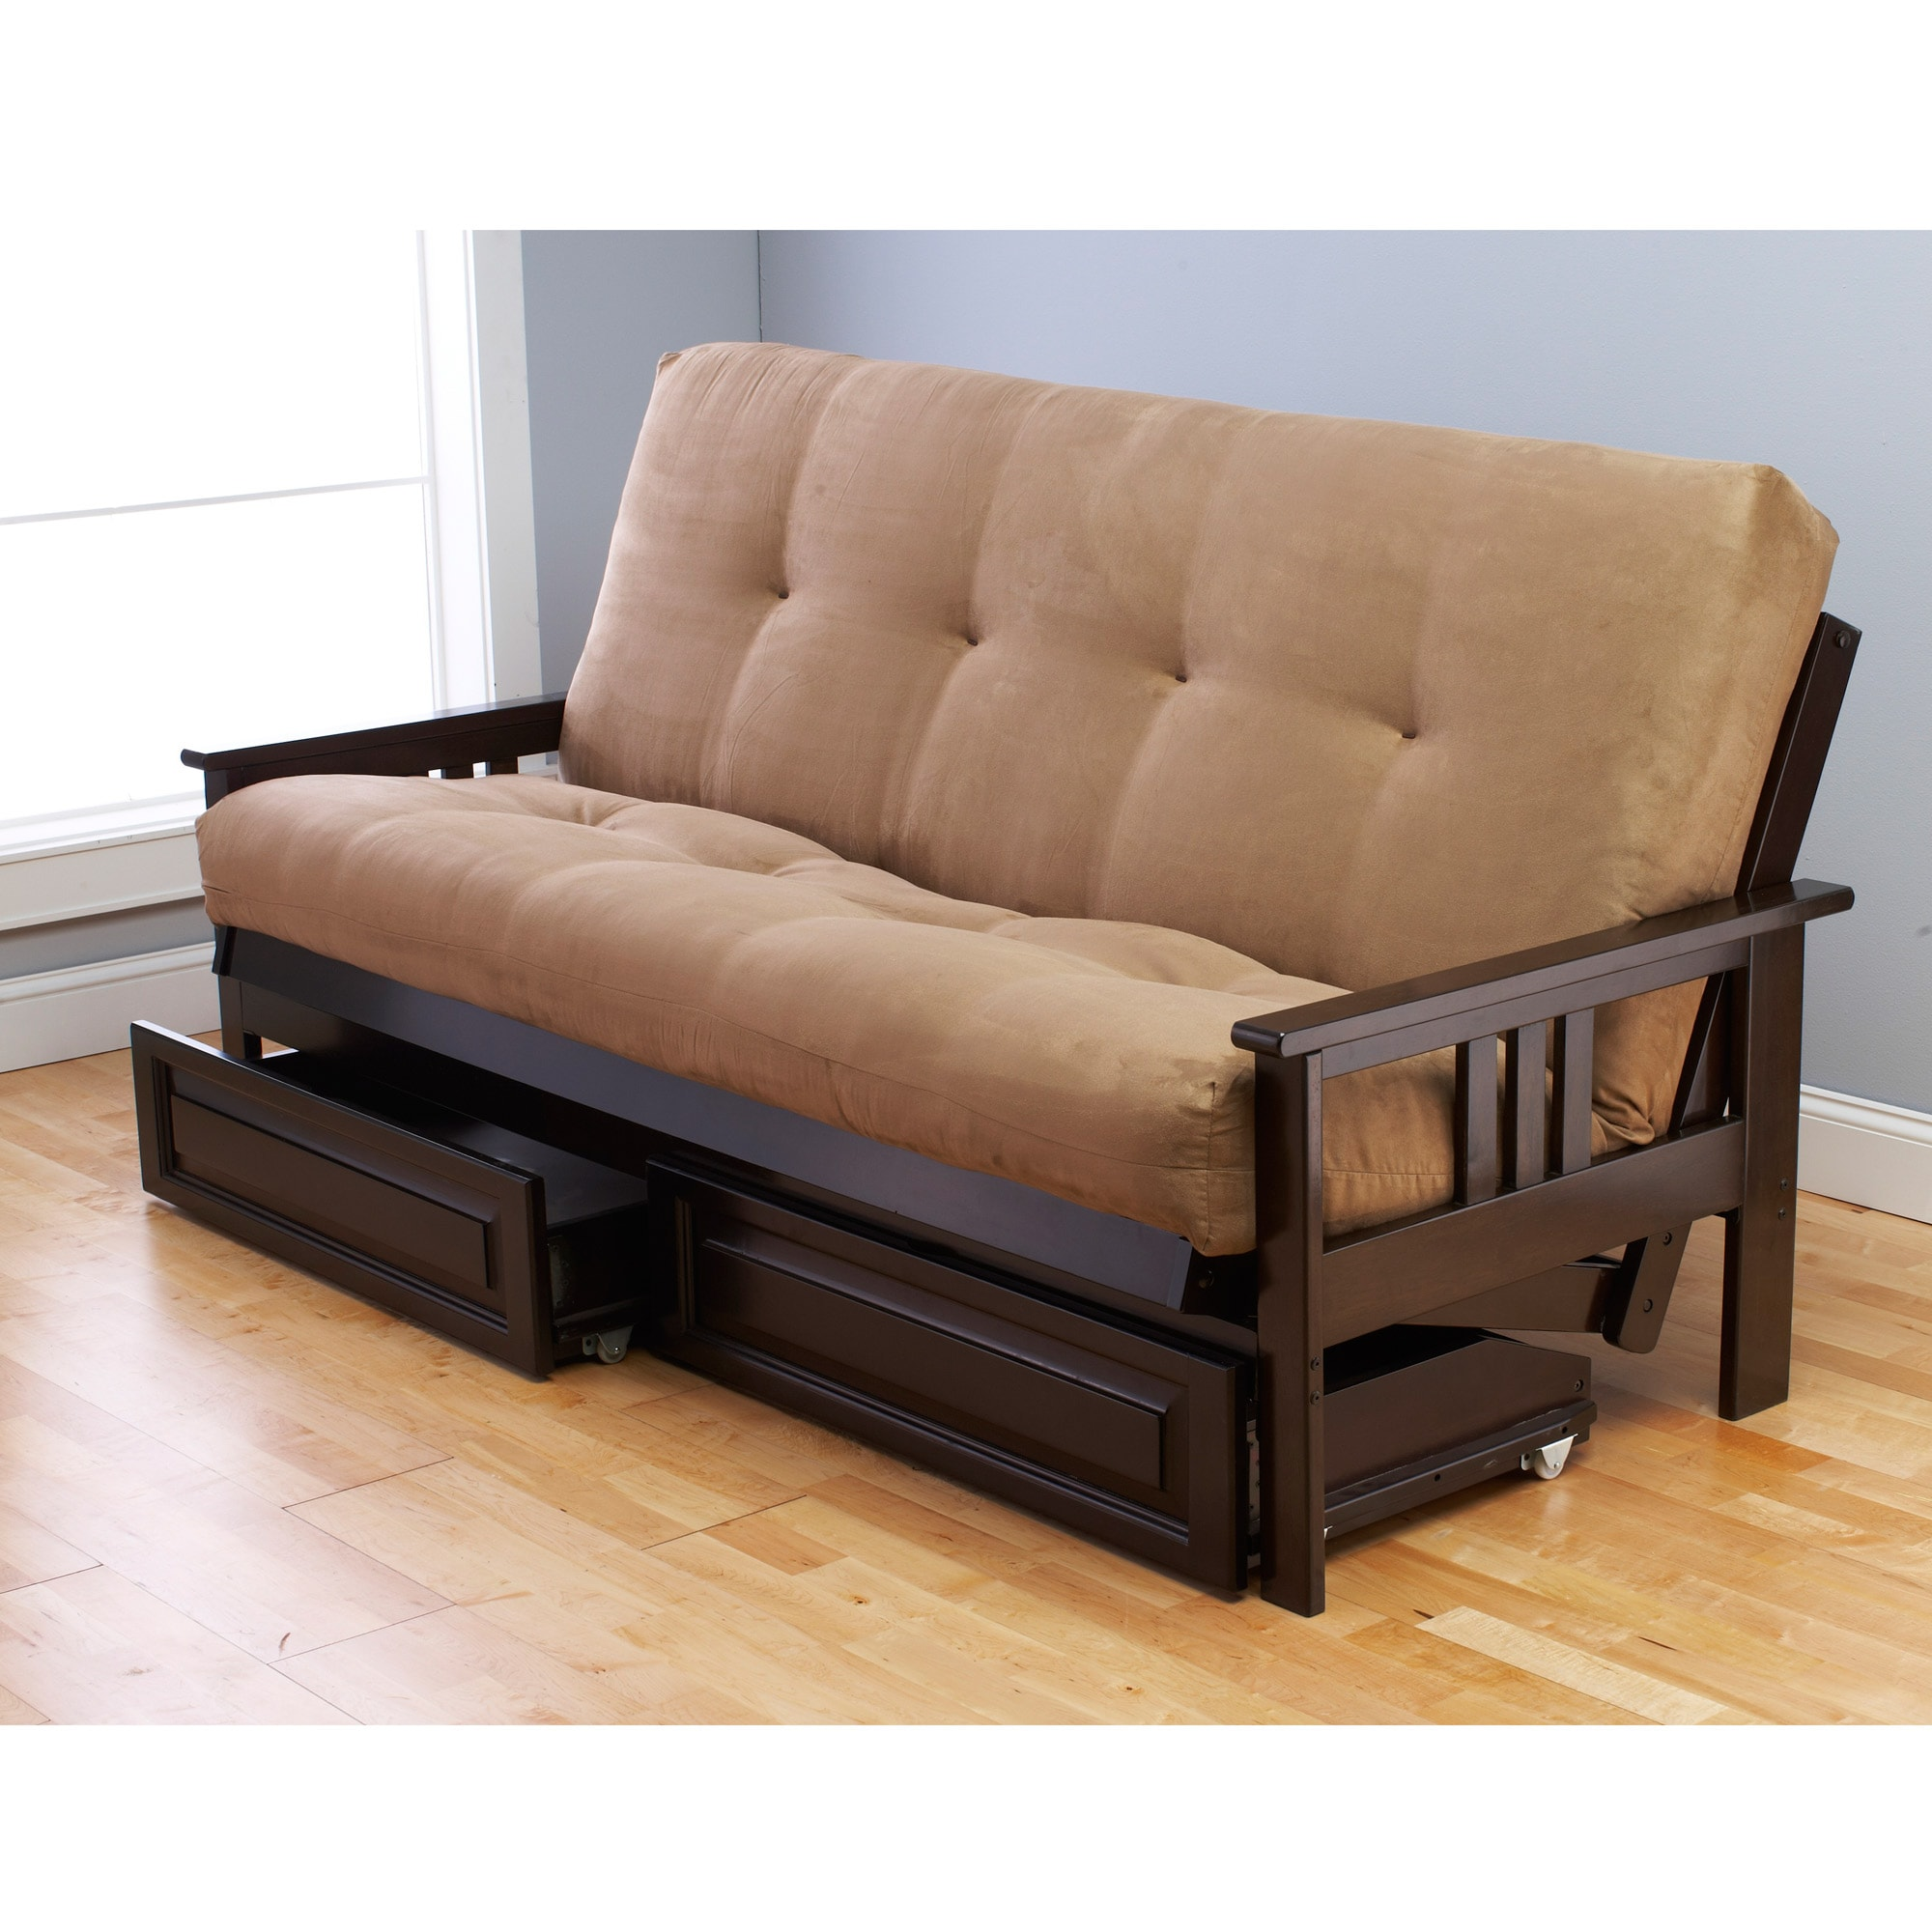 futon sets wooden frames - photo #6